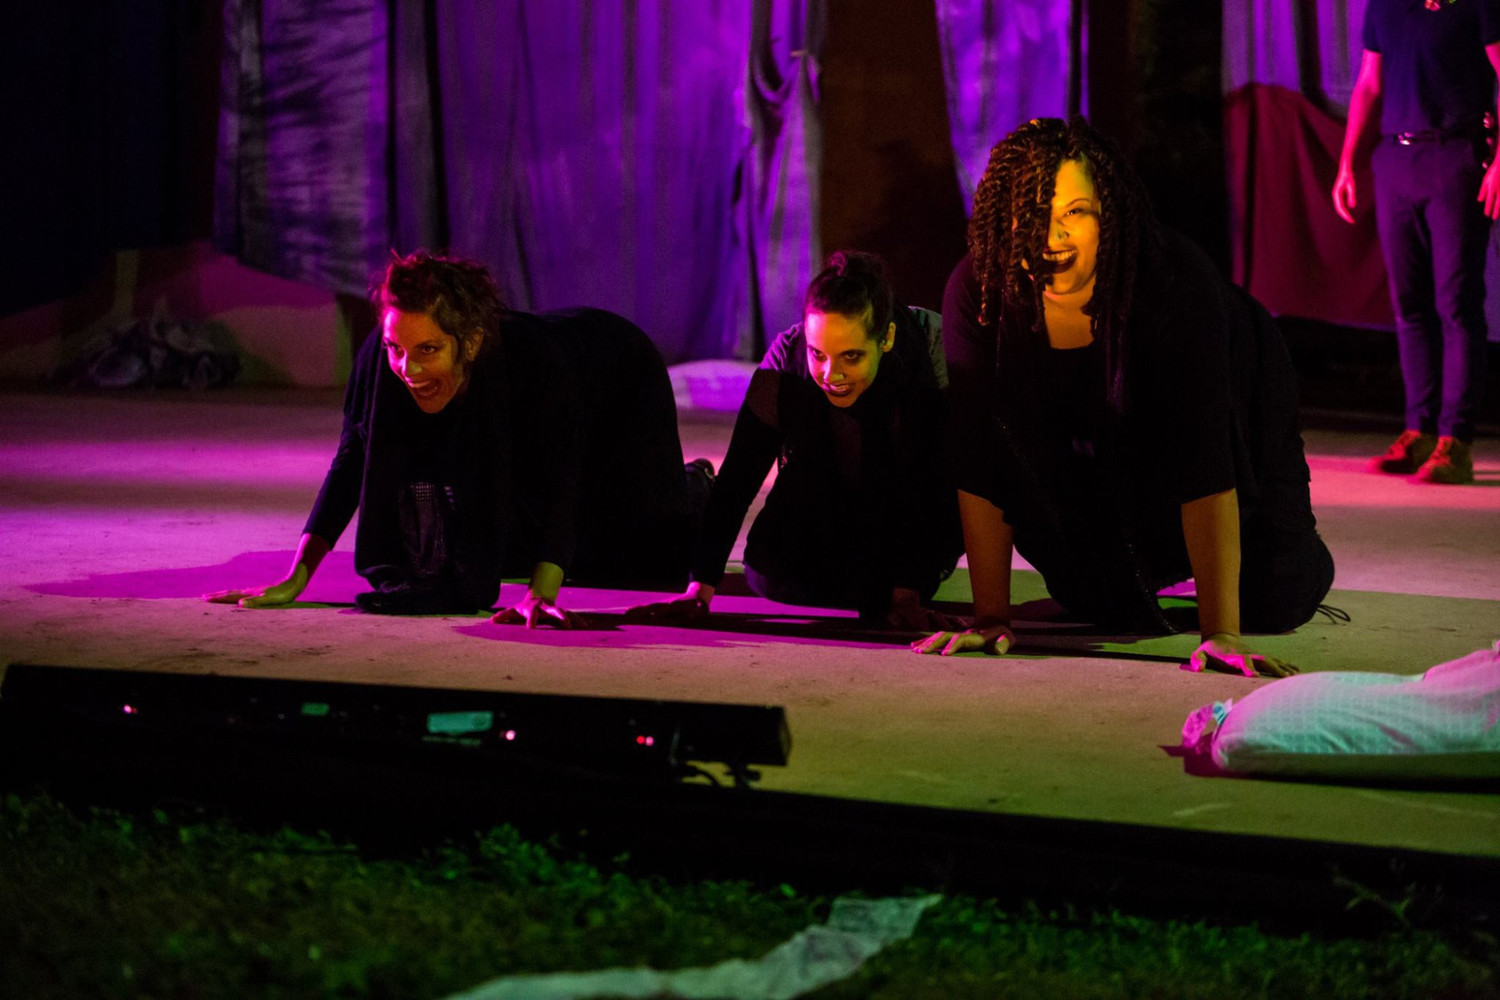 BWW Review: MACBETH Highlights The Might of Women and Folly of Man